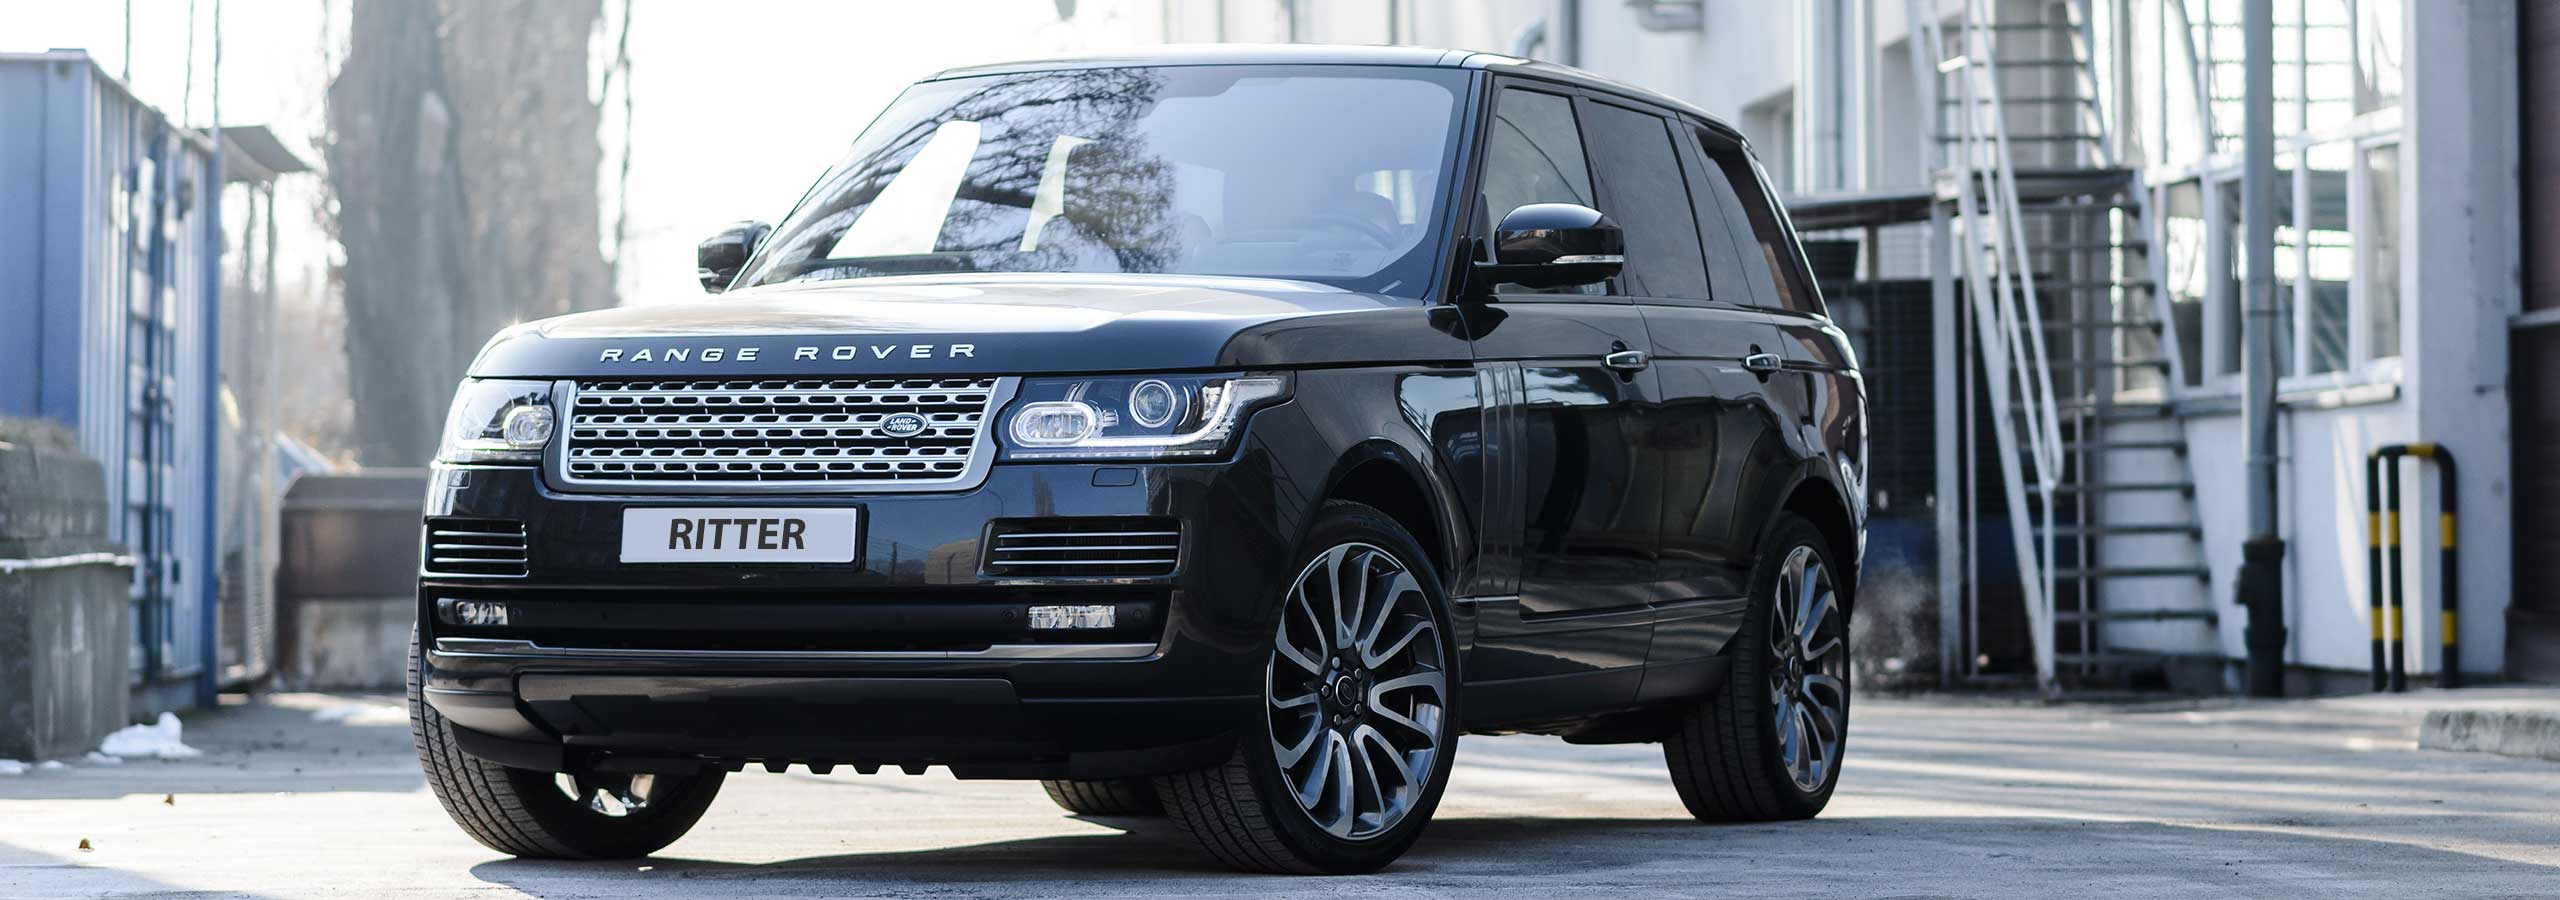 Sales | Ritter Land Rover